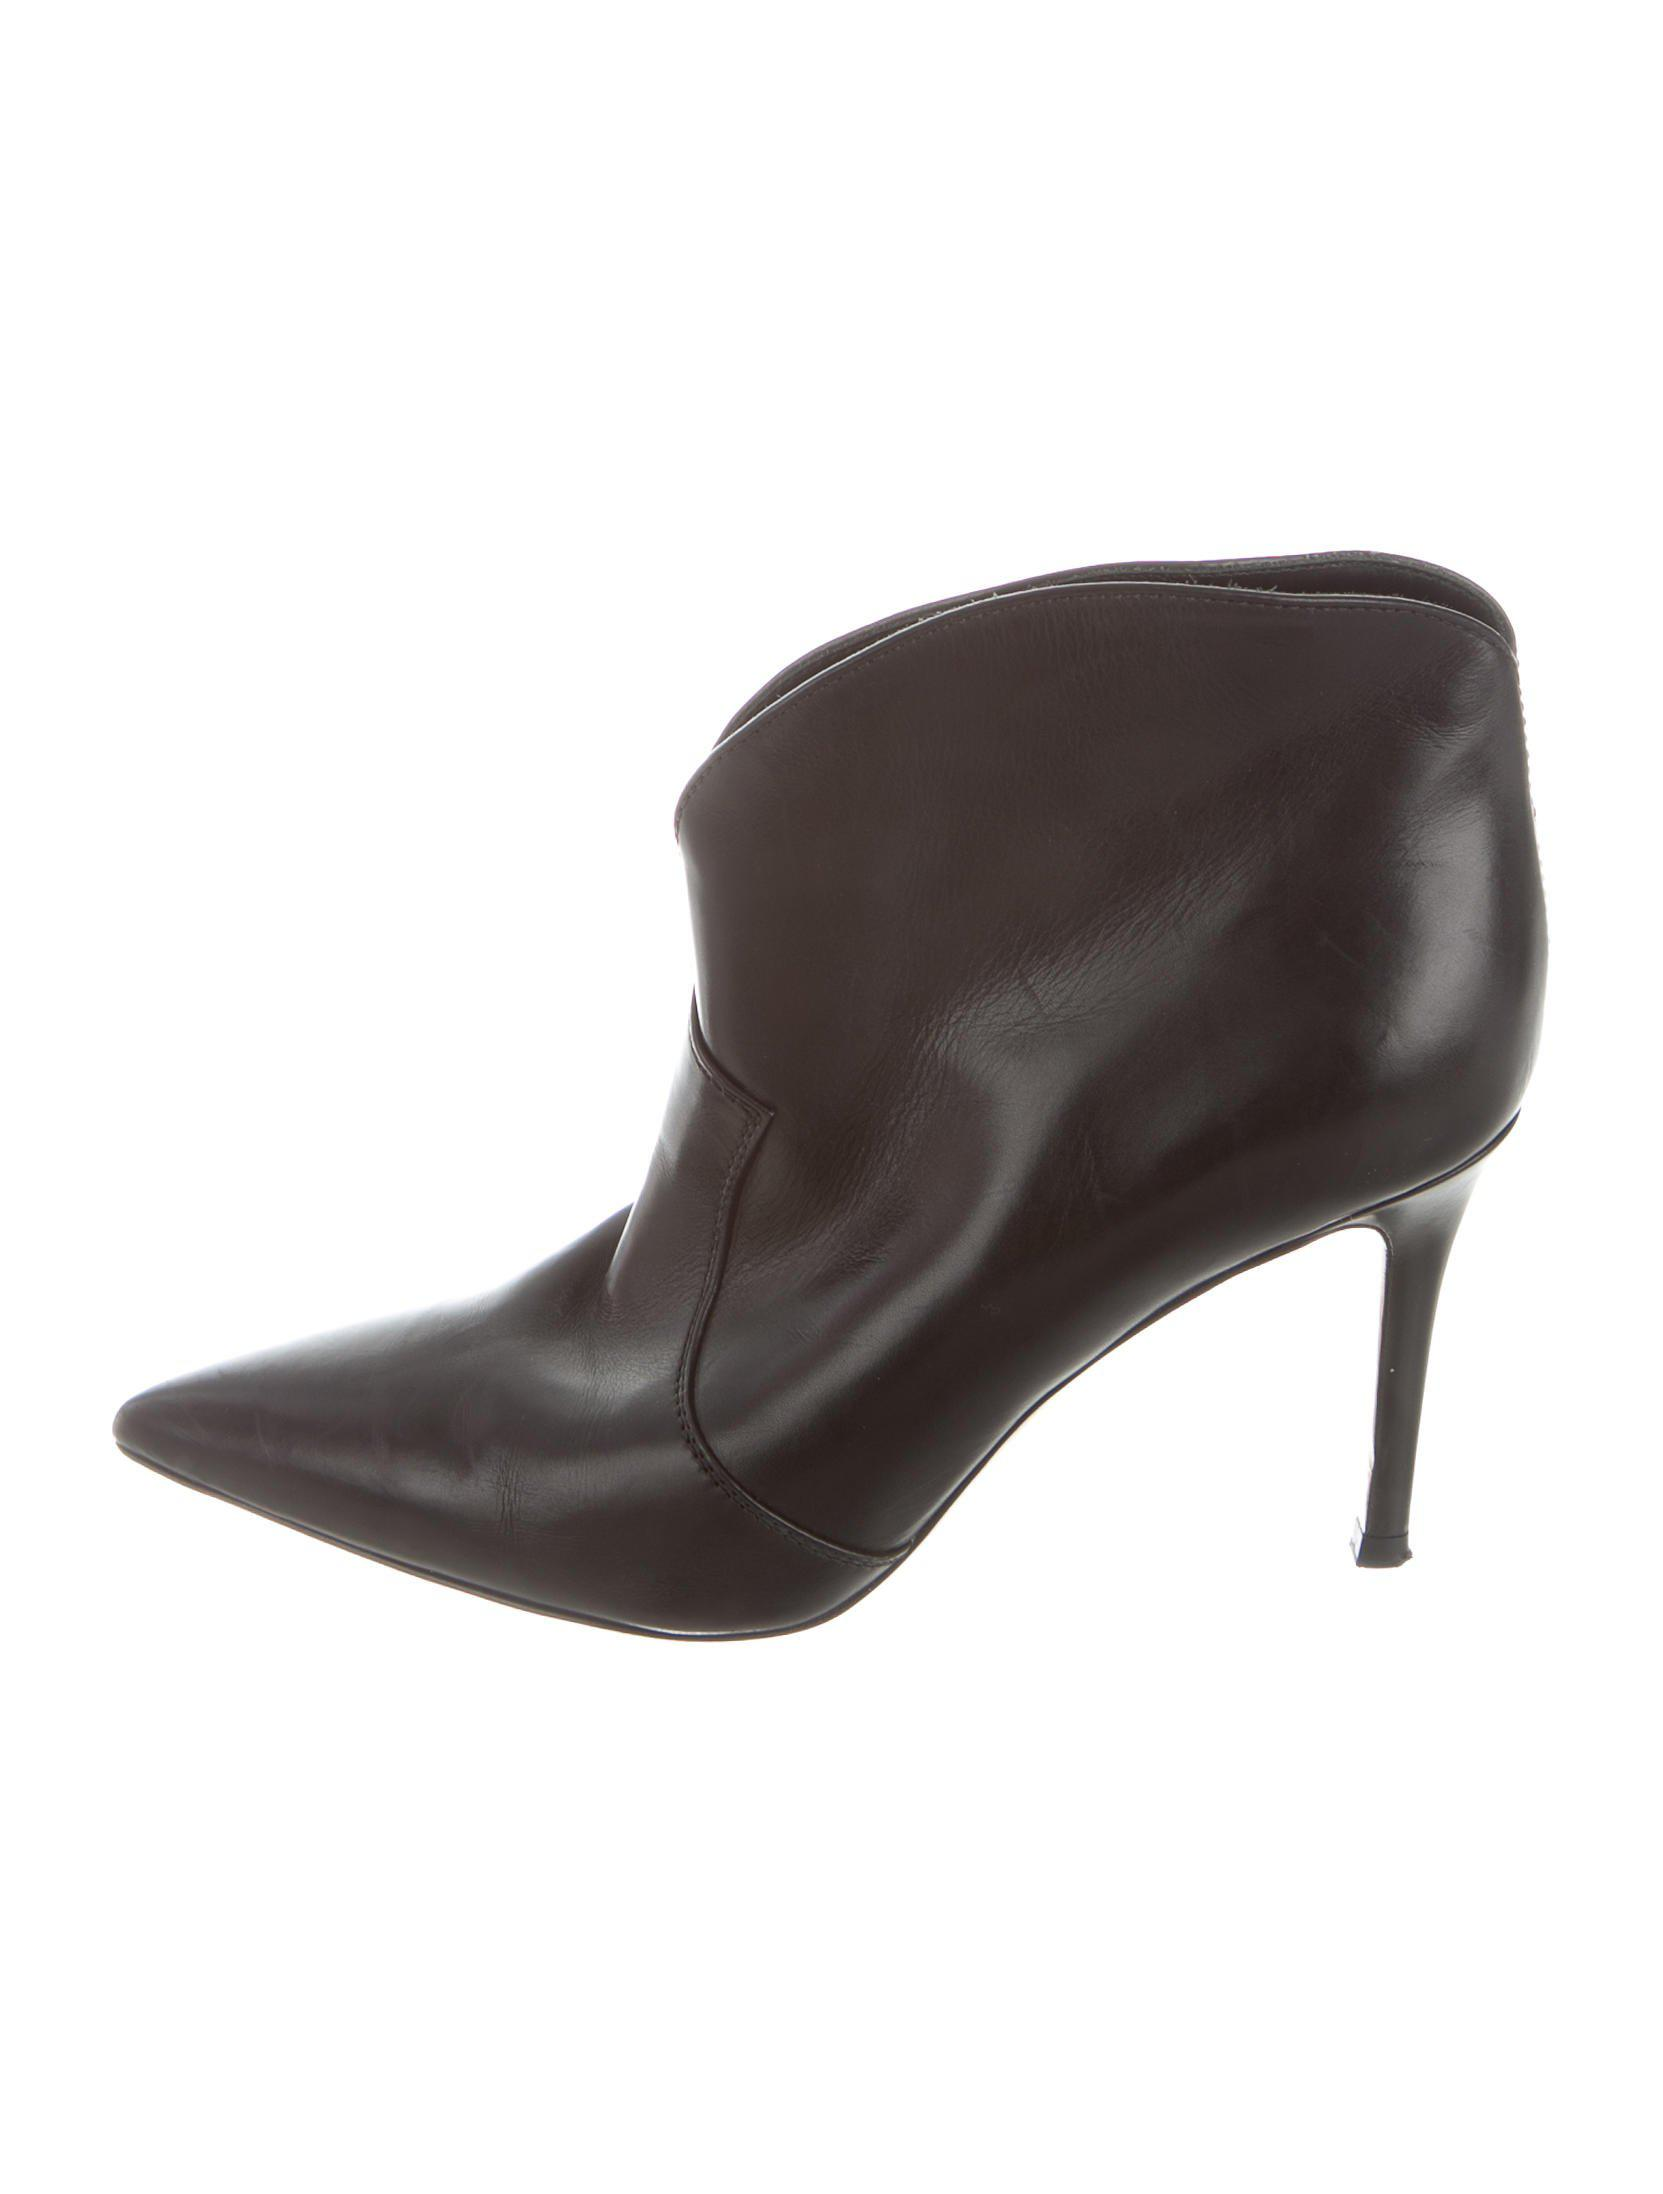 Black Pointed Toe Ankle Boots Gianvito Rossi Cheap Countdown Package Top Quality For Sale Outlet Wholesale Price Outlet Many Kinds Of Discount Visit jUPIqHl6